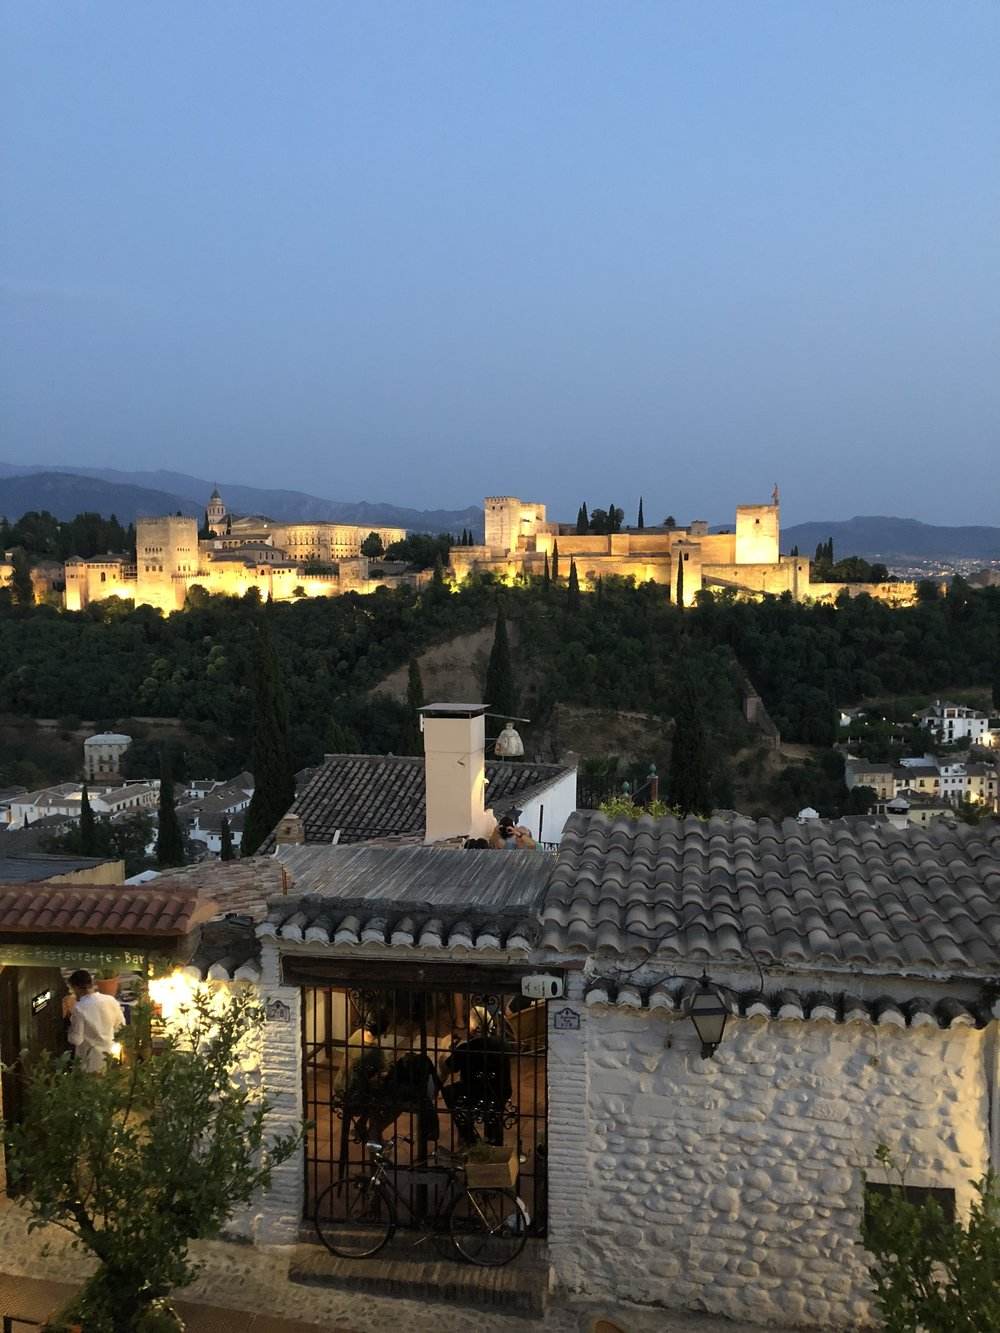 Evening view of La Alhambra